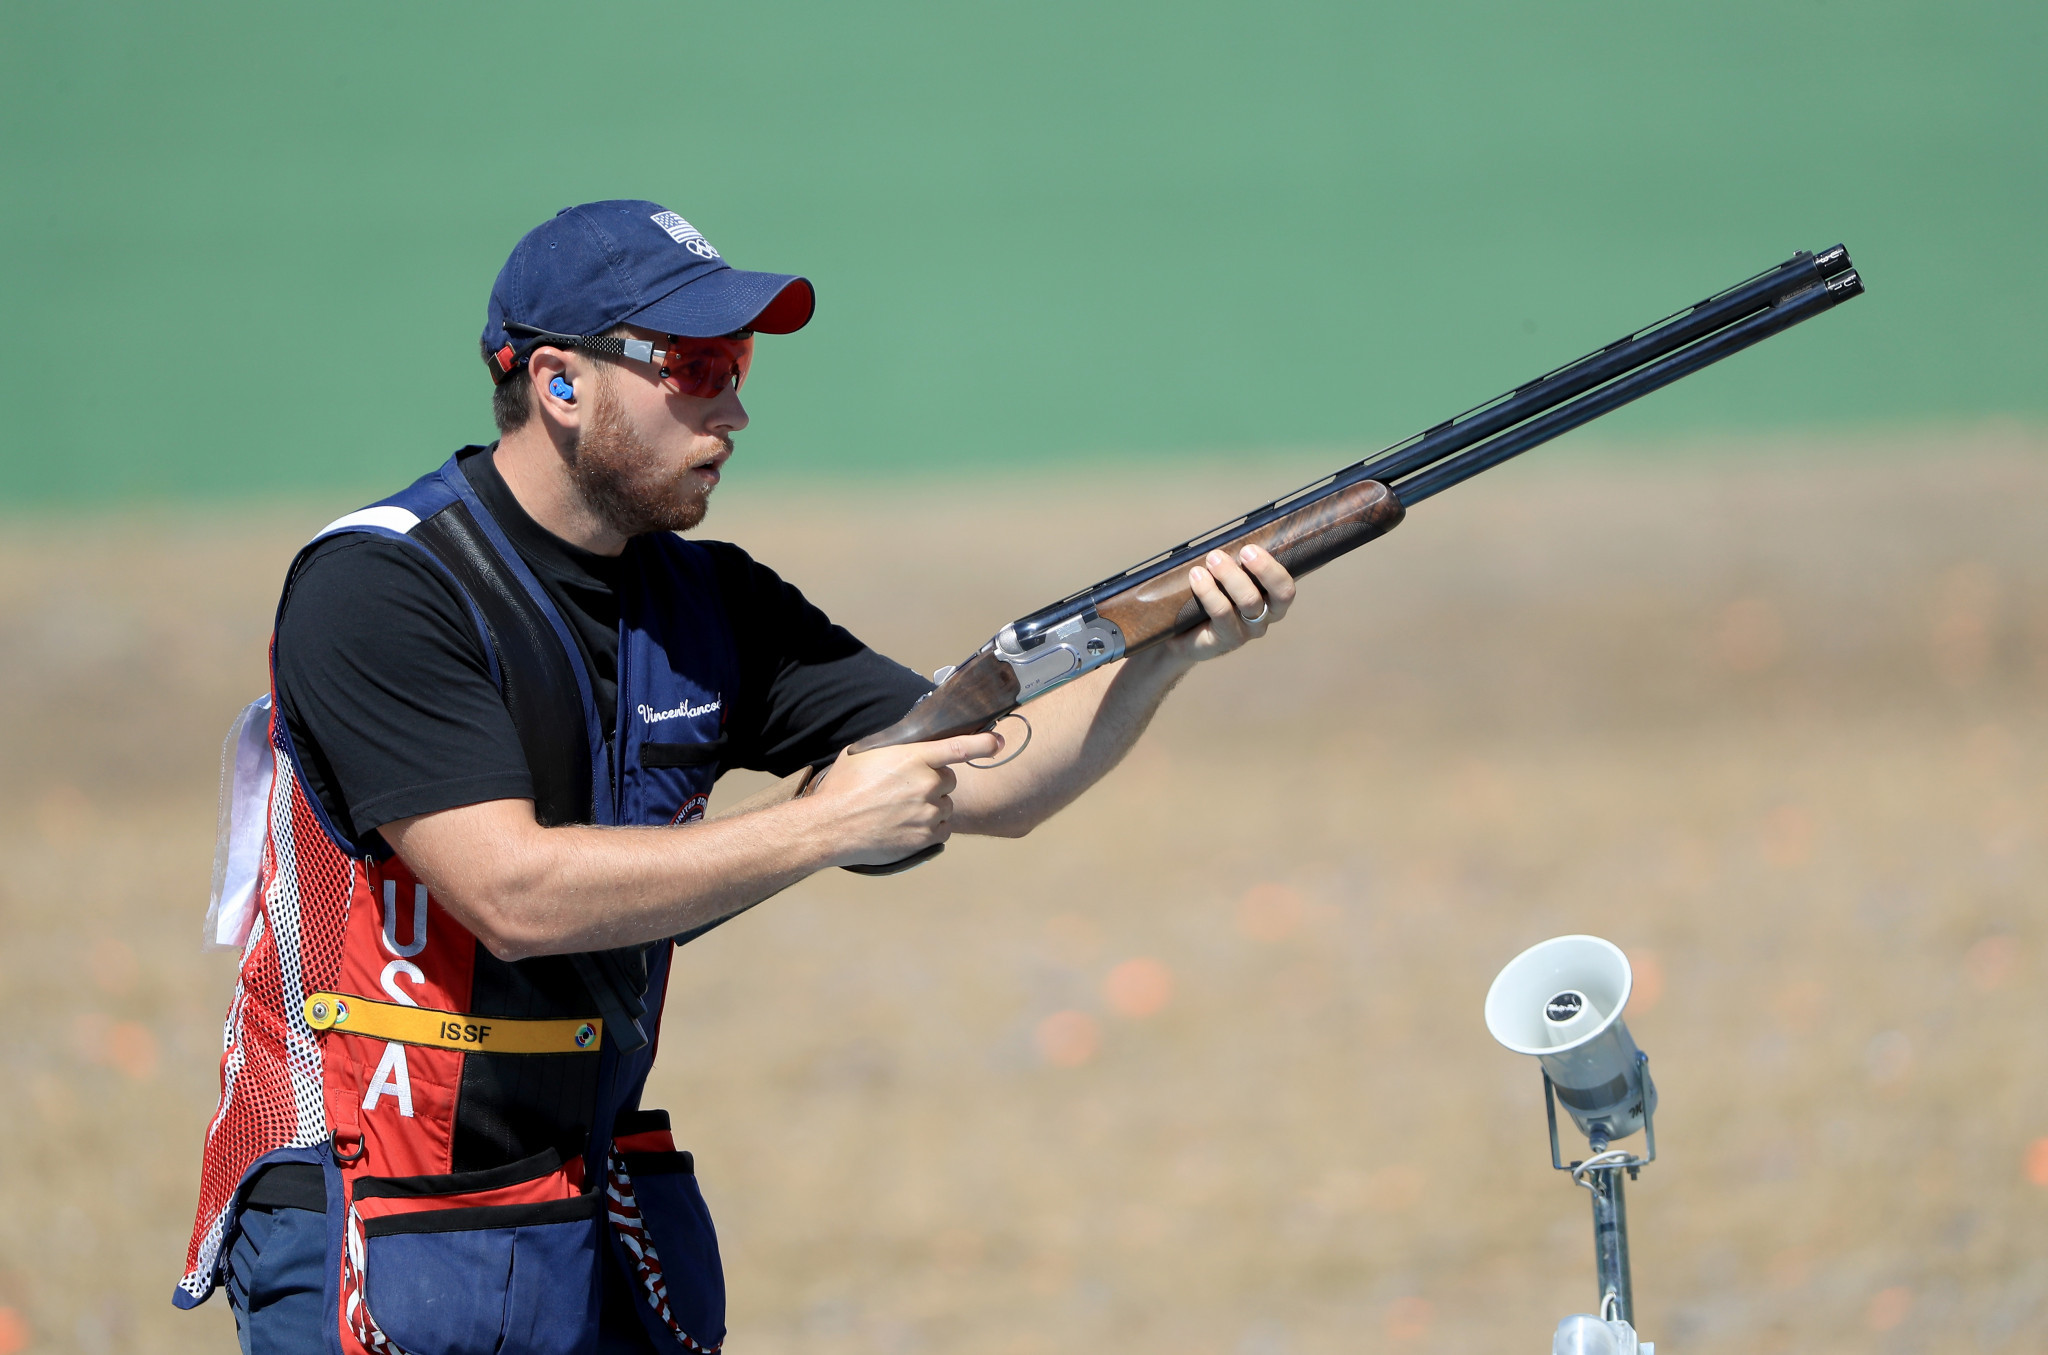 Hancock earns 12th ISSF World Cup title as he wins men's skeet in Changwon